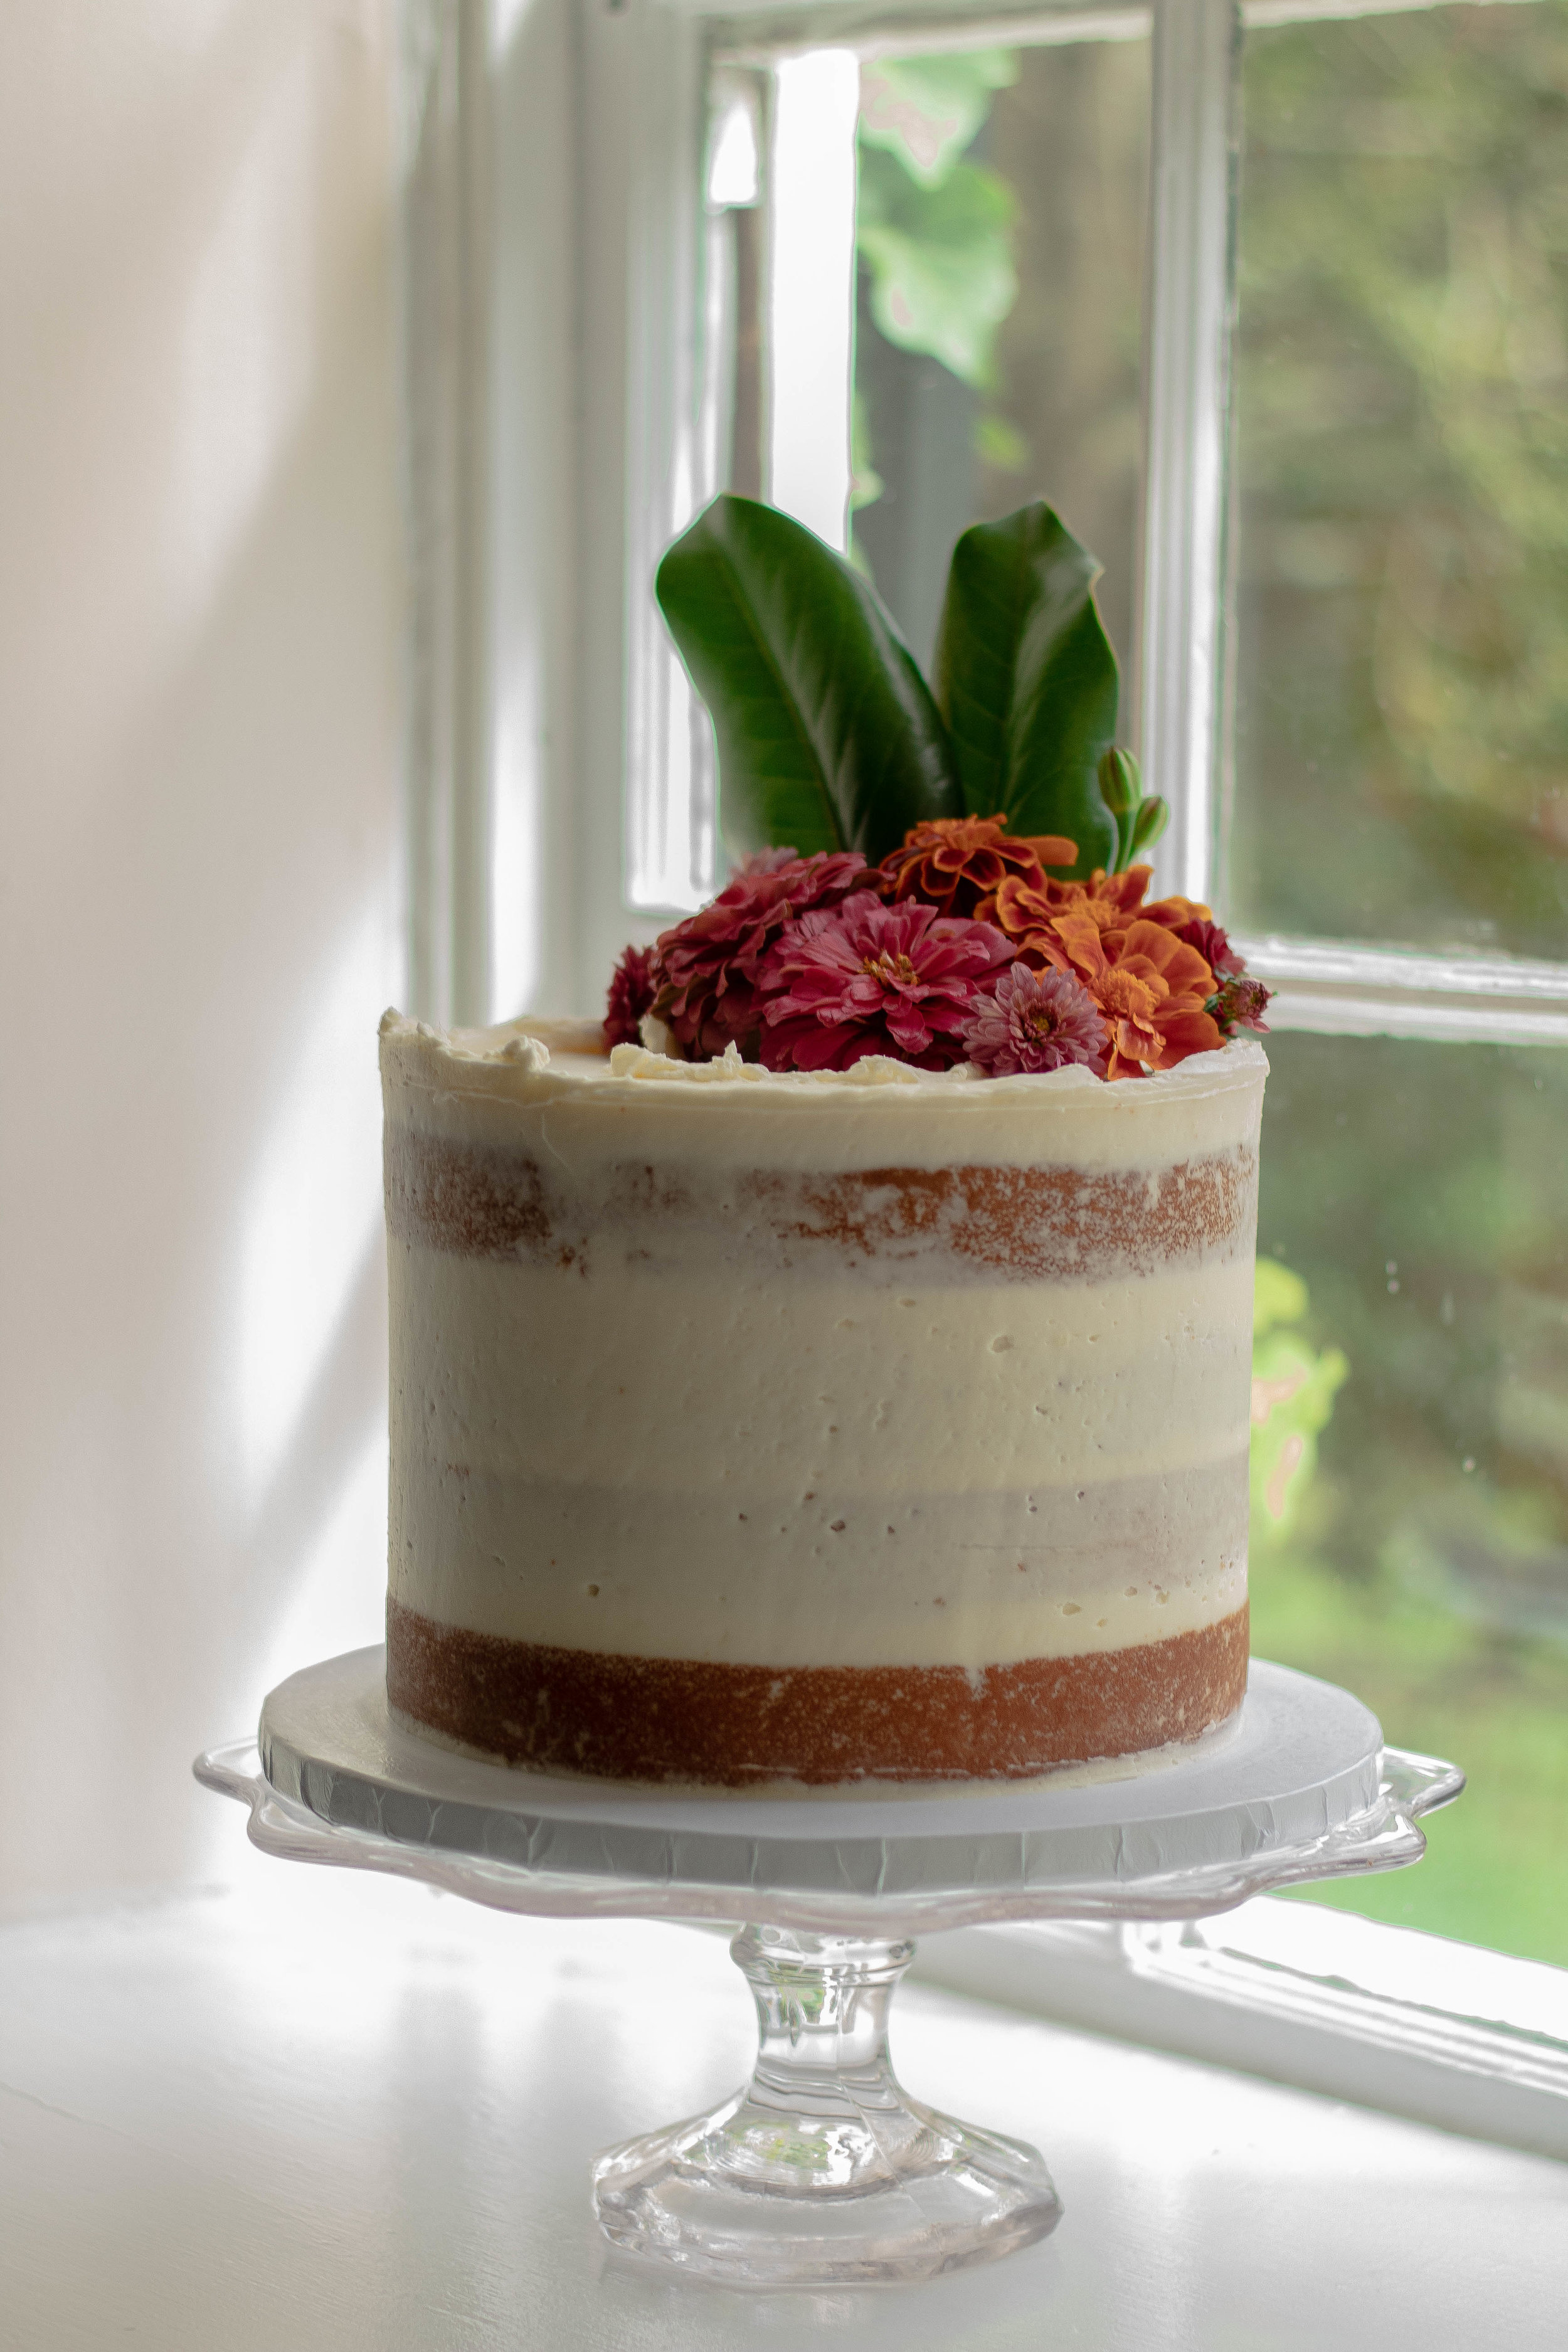 Scout's Bake Shop  created this masterpiece and Ballenger windows are made for cakes!